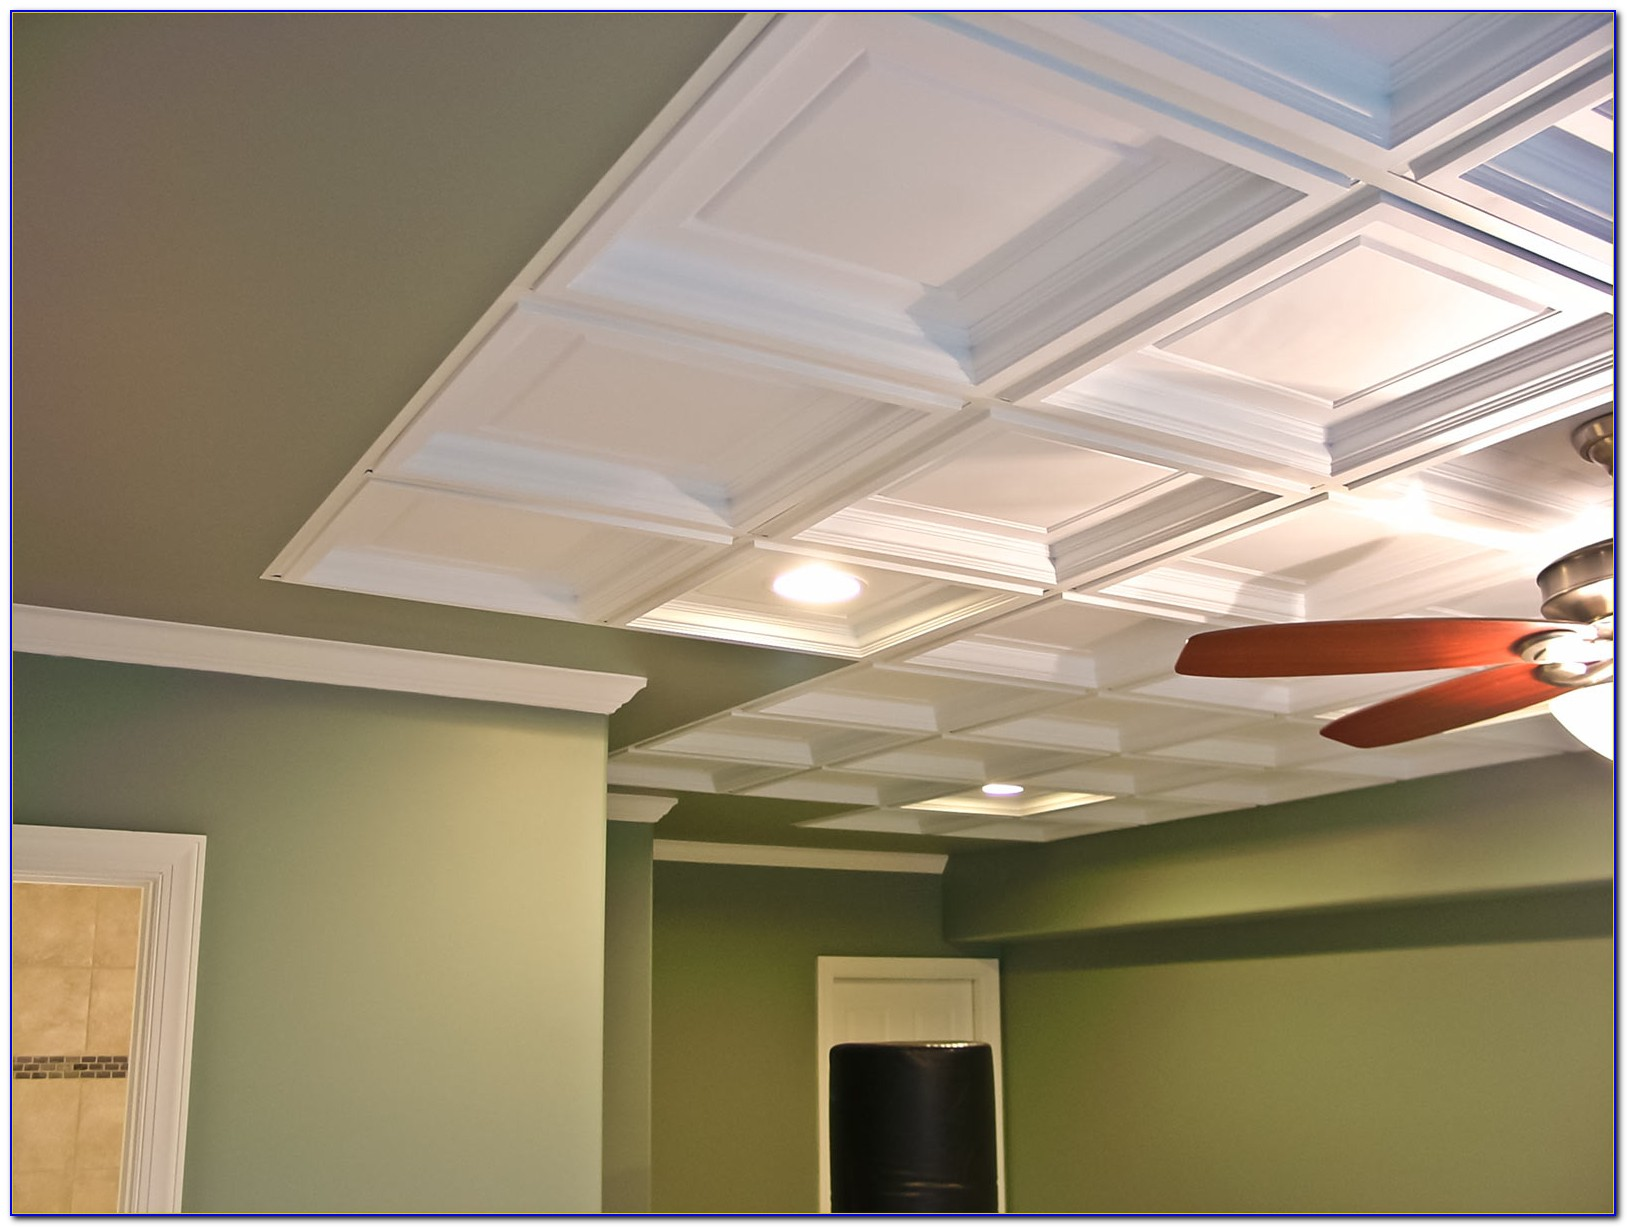 Decorative Ceiling Tiles 2x4